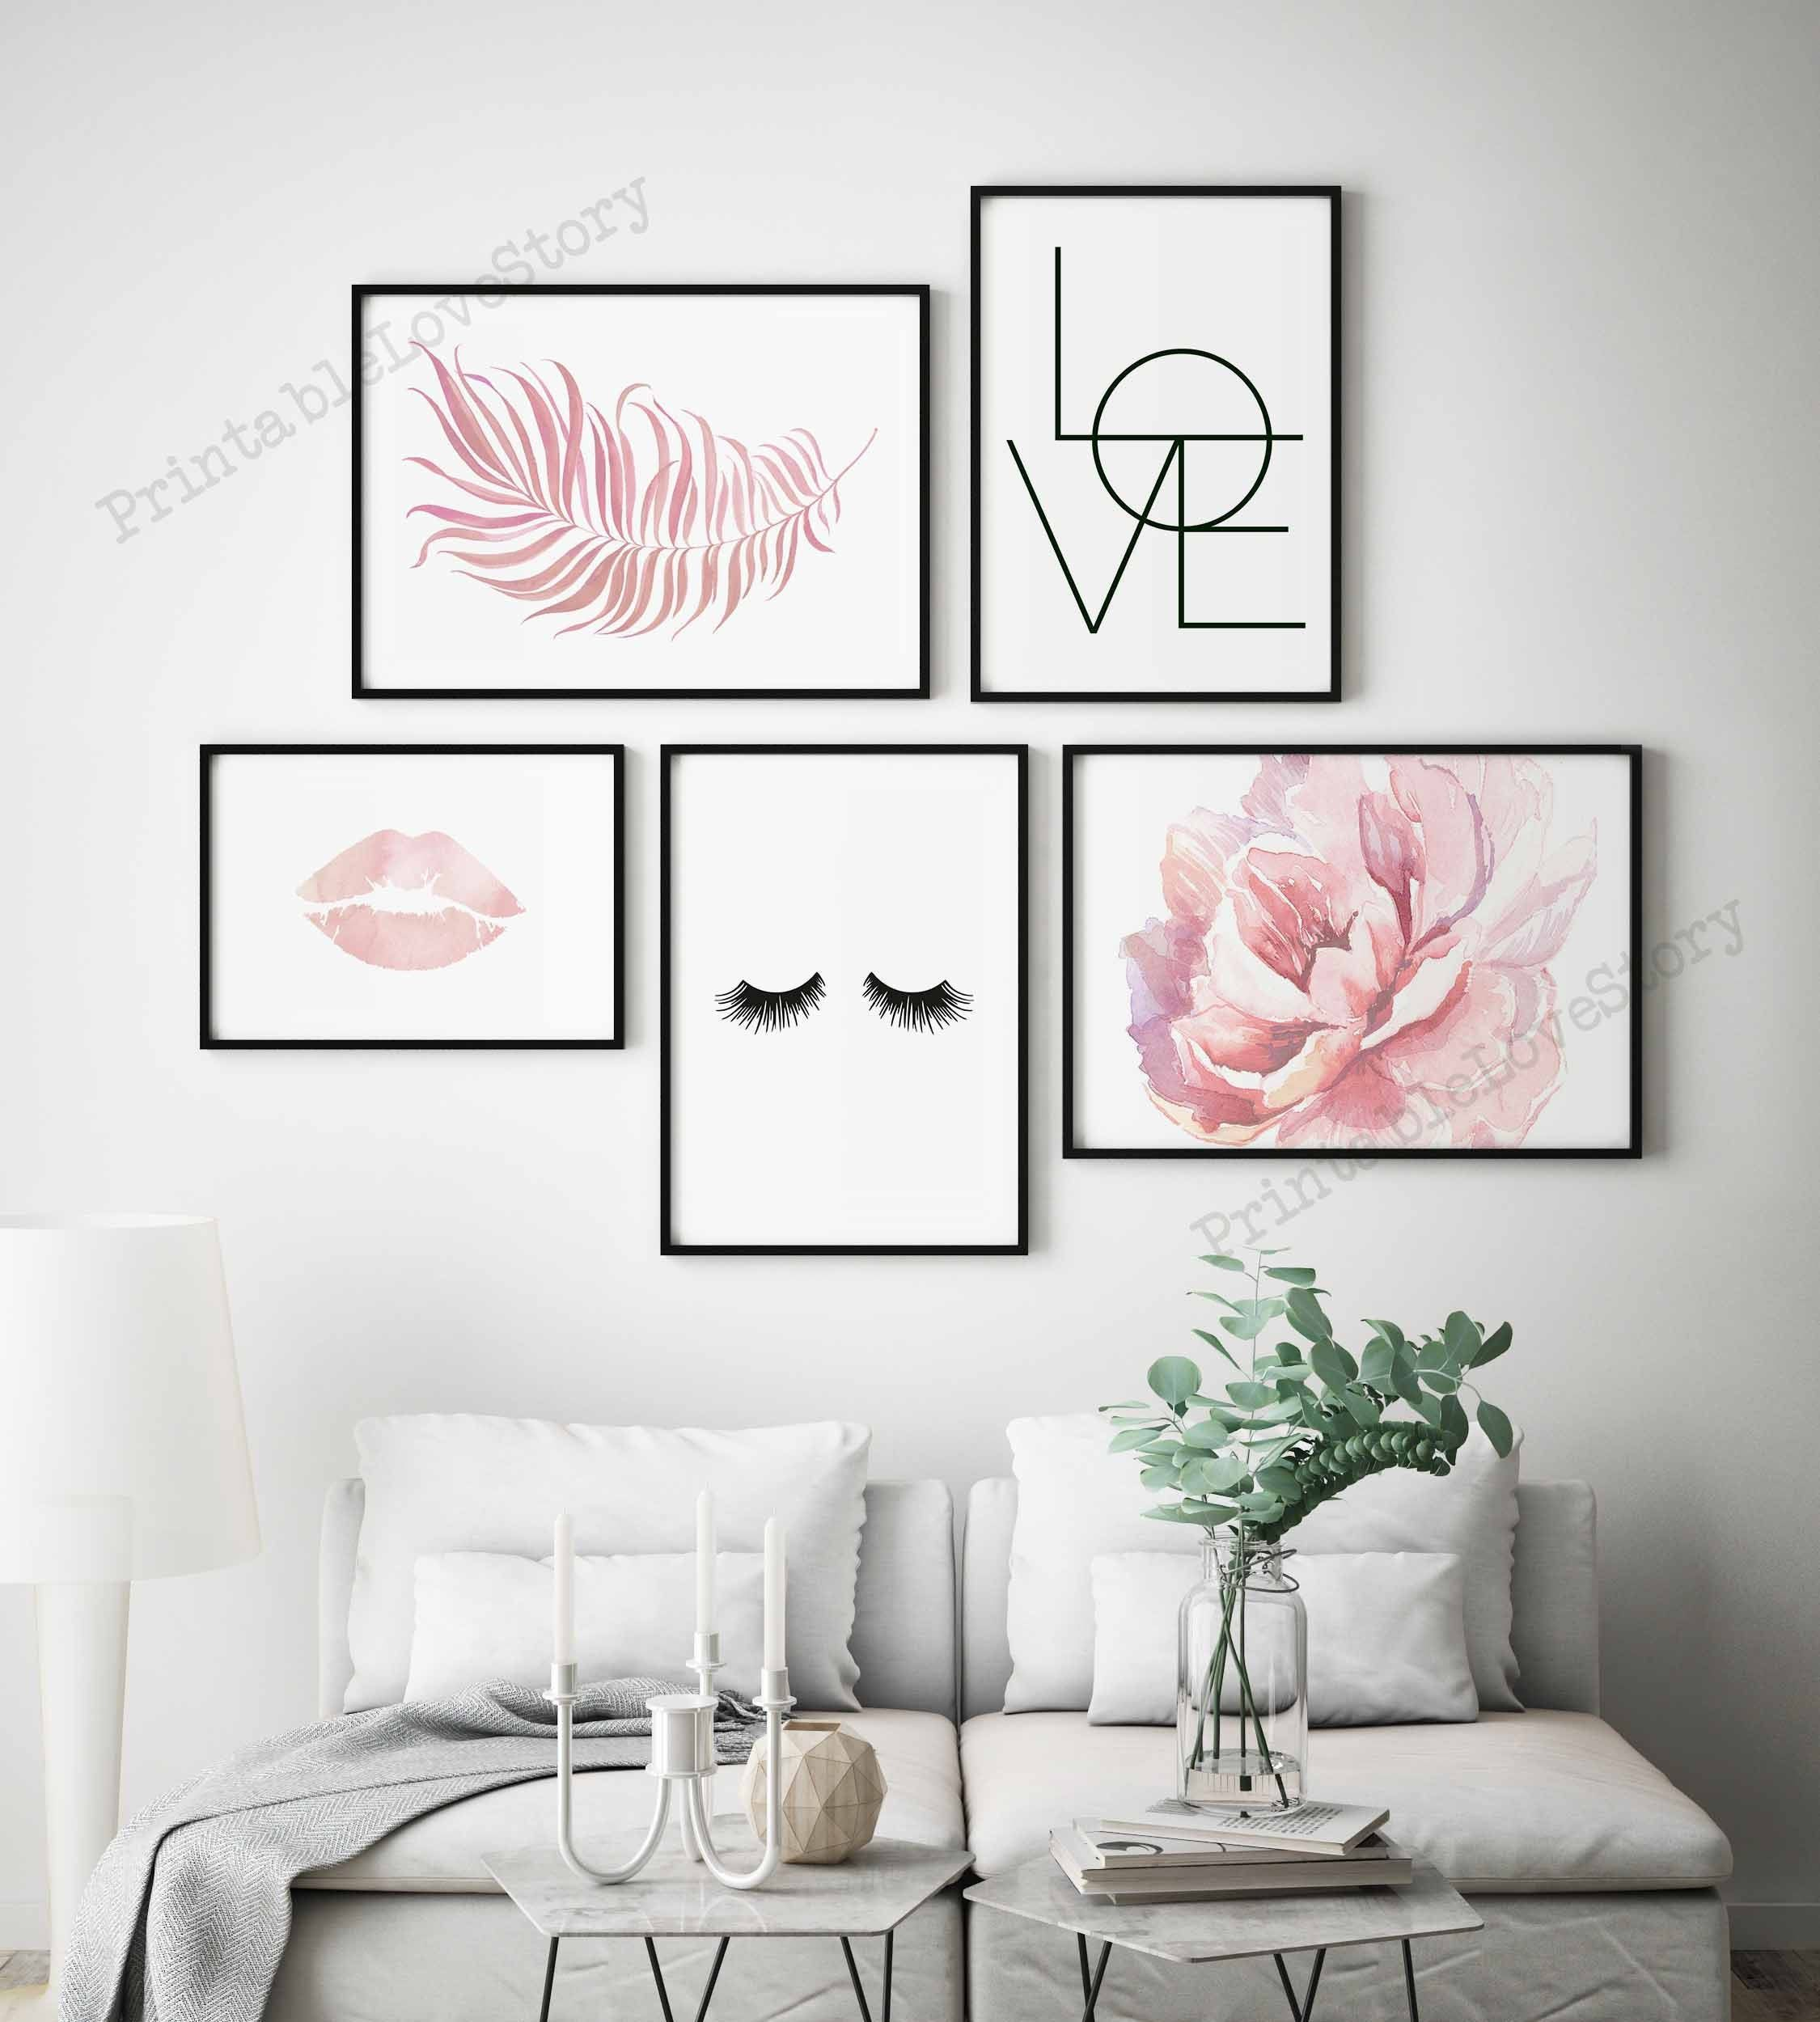 Gallery Wall Artmakeup Wall Artblush Pink Printslashes Etsy Wall Decor Bedroom Paris Decor Bedroom Pink Wall Decor